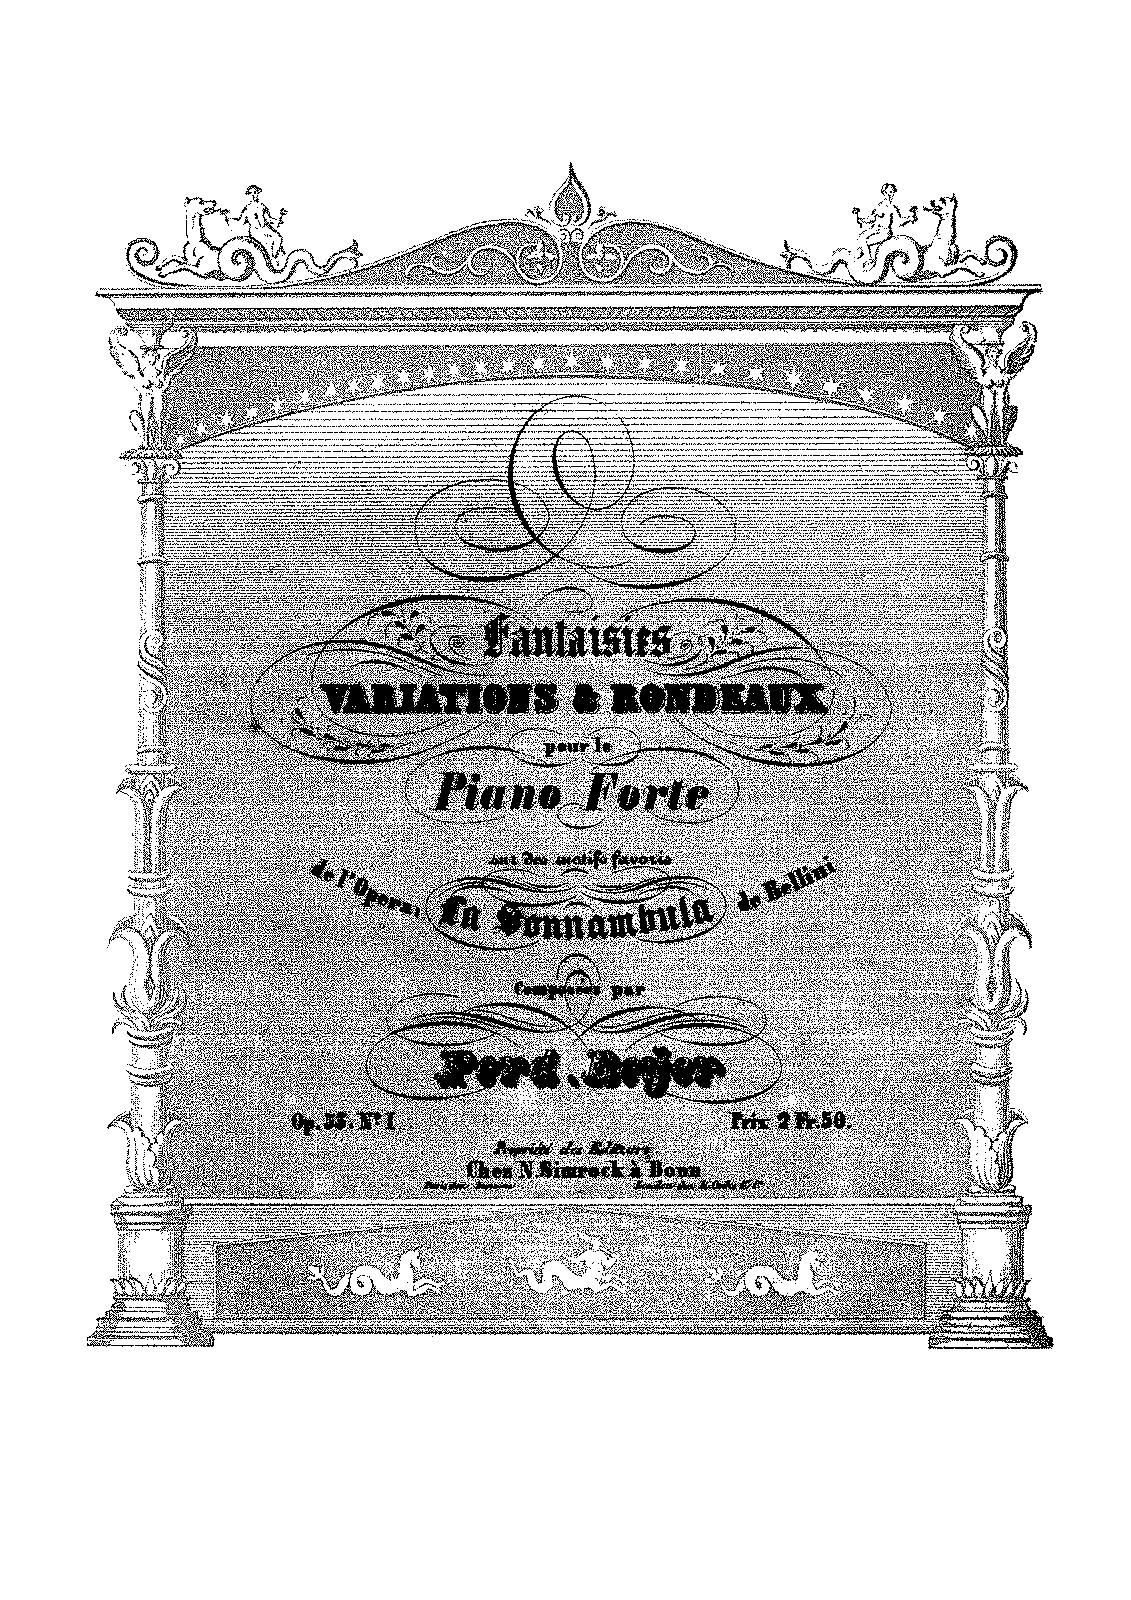 PMLP334069-Beyer - 53-1 Fantaisies variations & rondeaux op 53 no 1 La Sonnambula de Bellini - (last page(s) missing).pdf